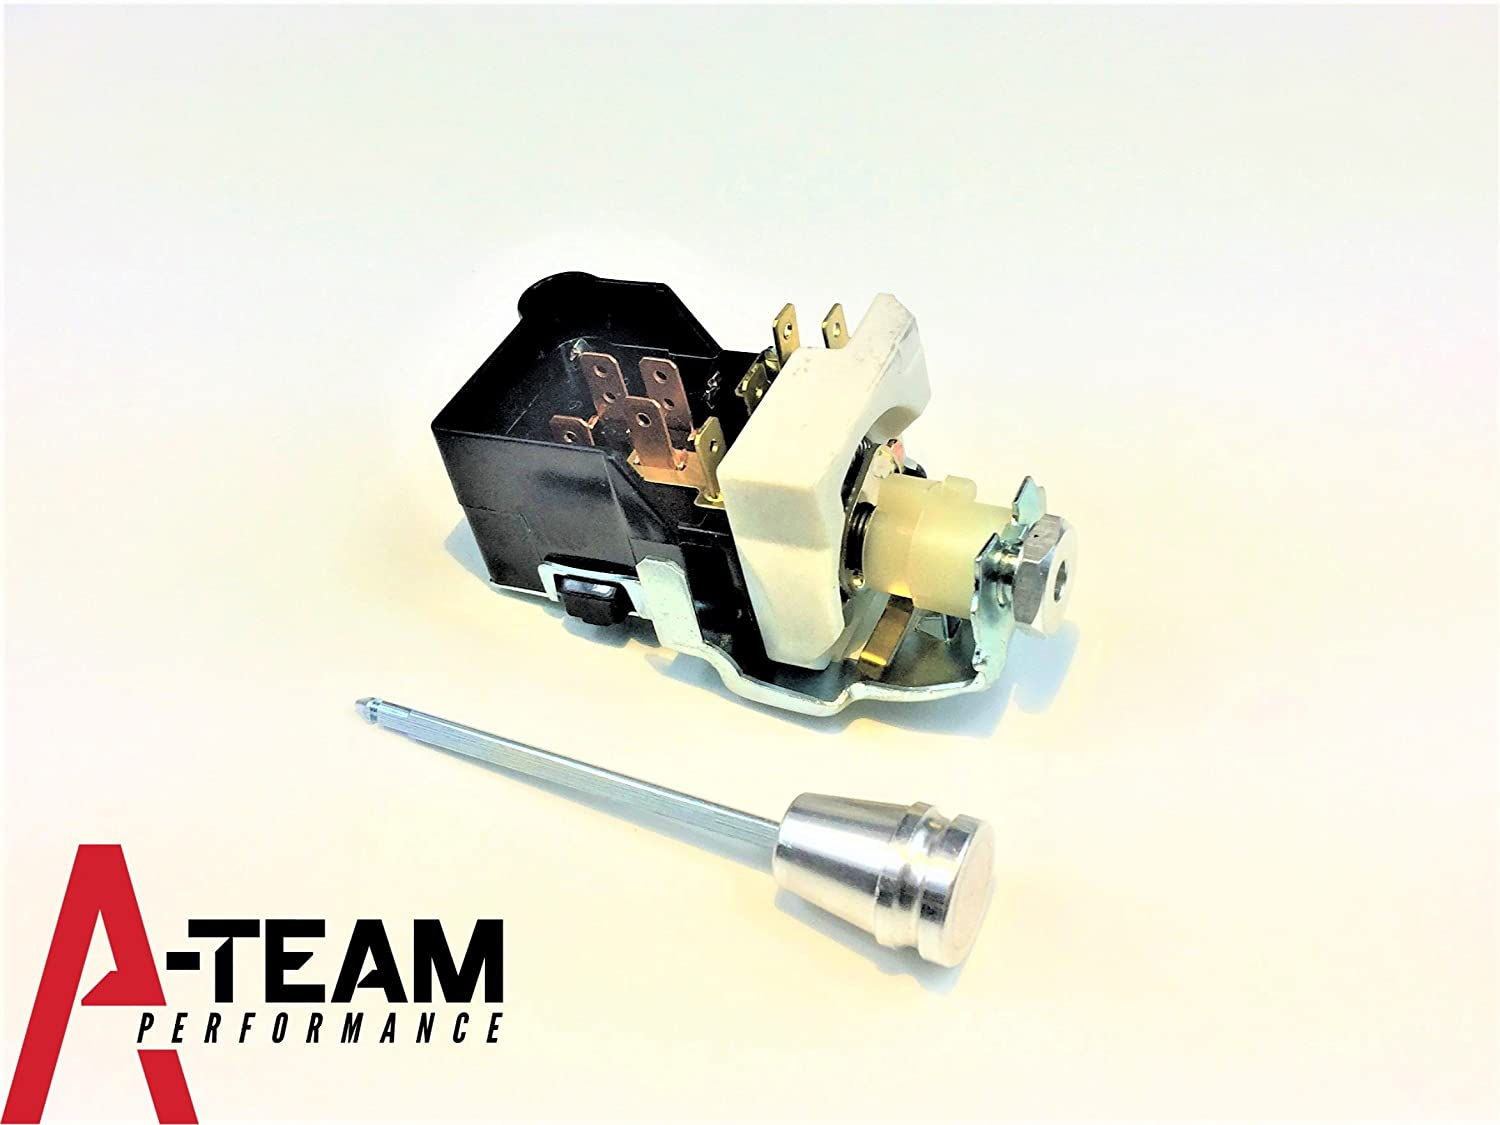 A-Team Performance BILLET ALUMINUM HEADLIGHT SWITCH DASH DIMMER STREET ROD TRUCK COMPATIBLE WITH CHEVY GM